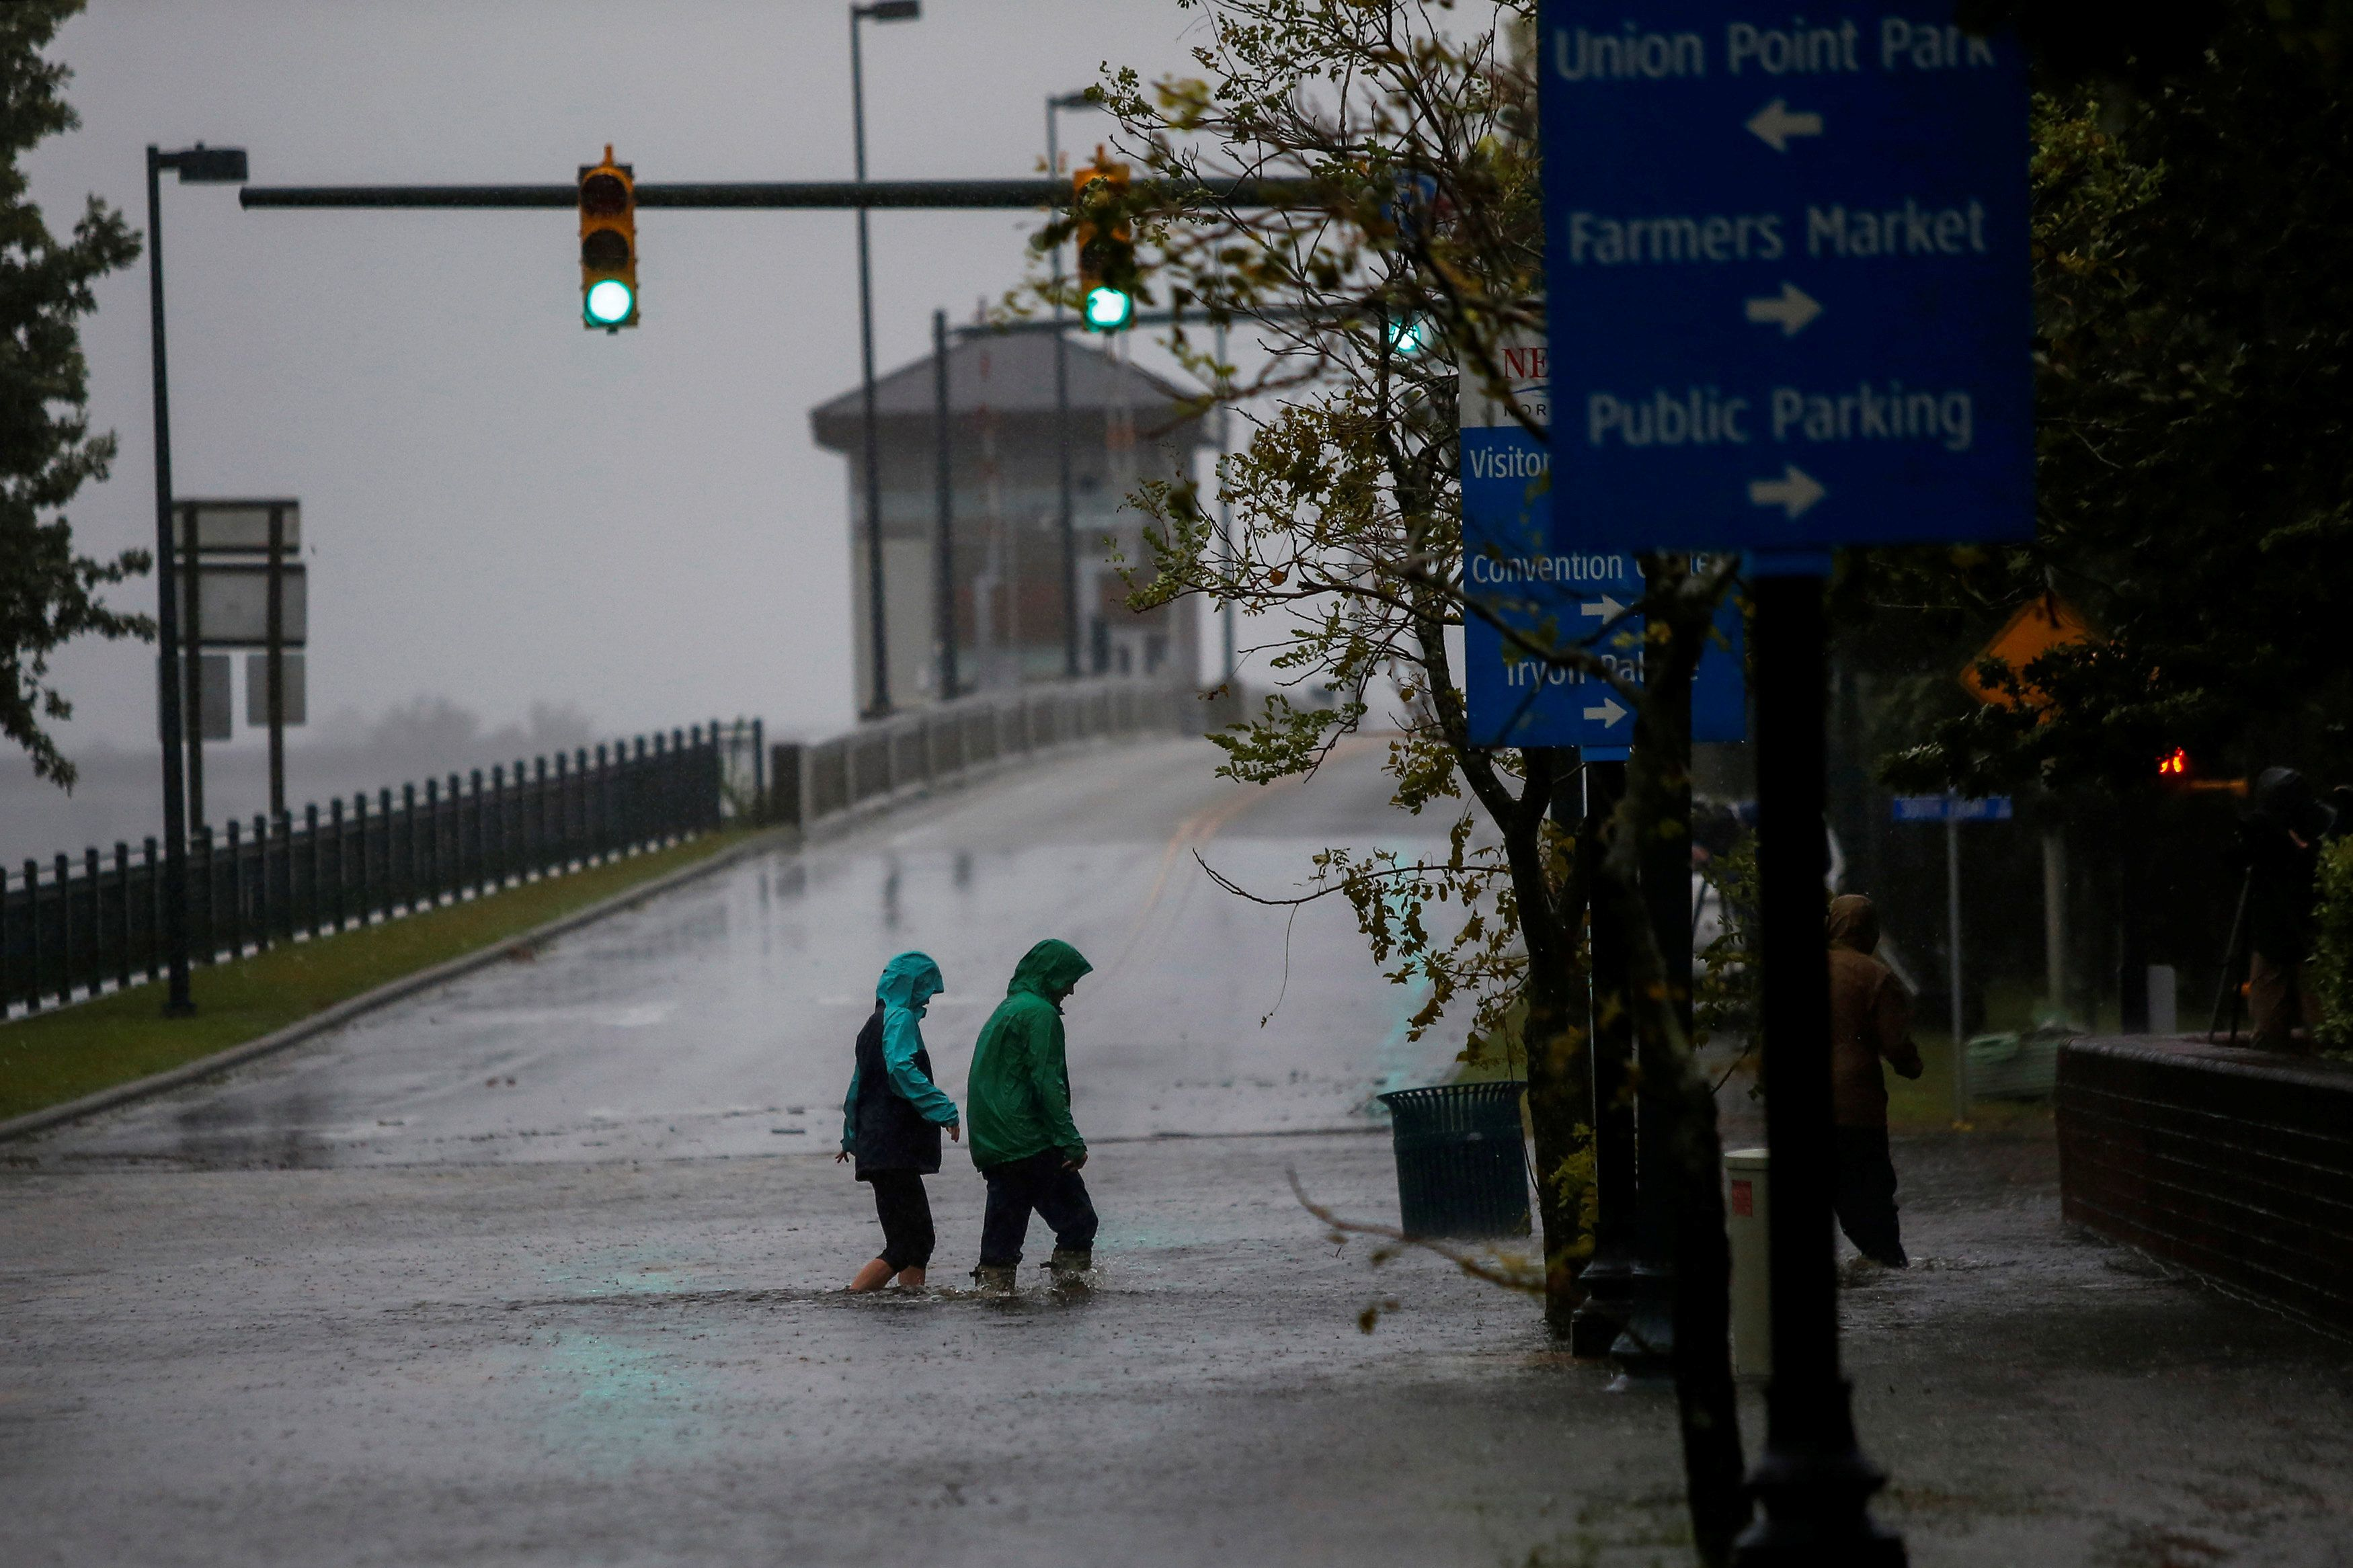 People walk on a local street as water from Neuse River starts flooding houses upon Hurricane Florence coming ashore in New Bern, North Carolina, U.S., September 13, 2018. REUTERS/Eduardo Munoz